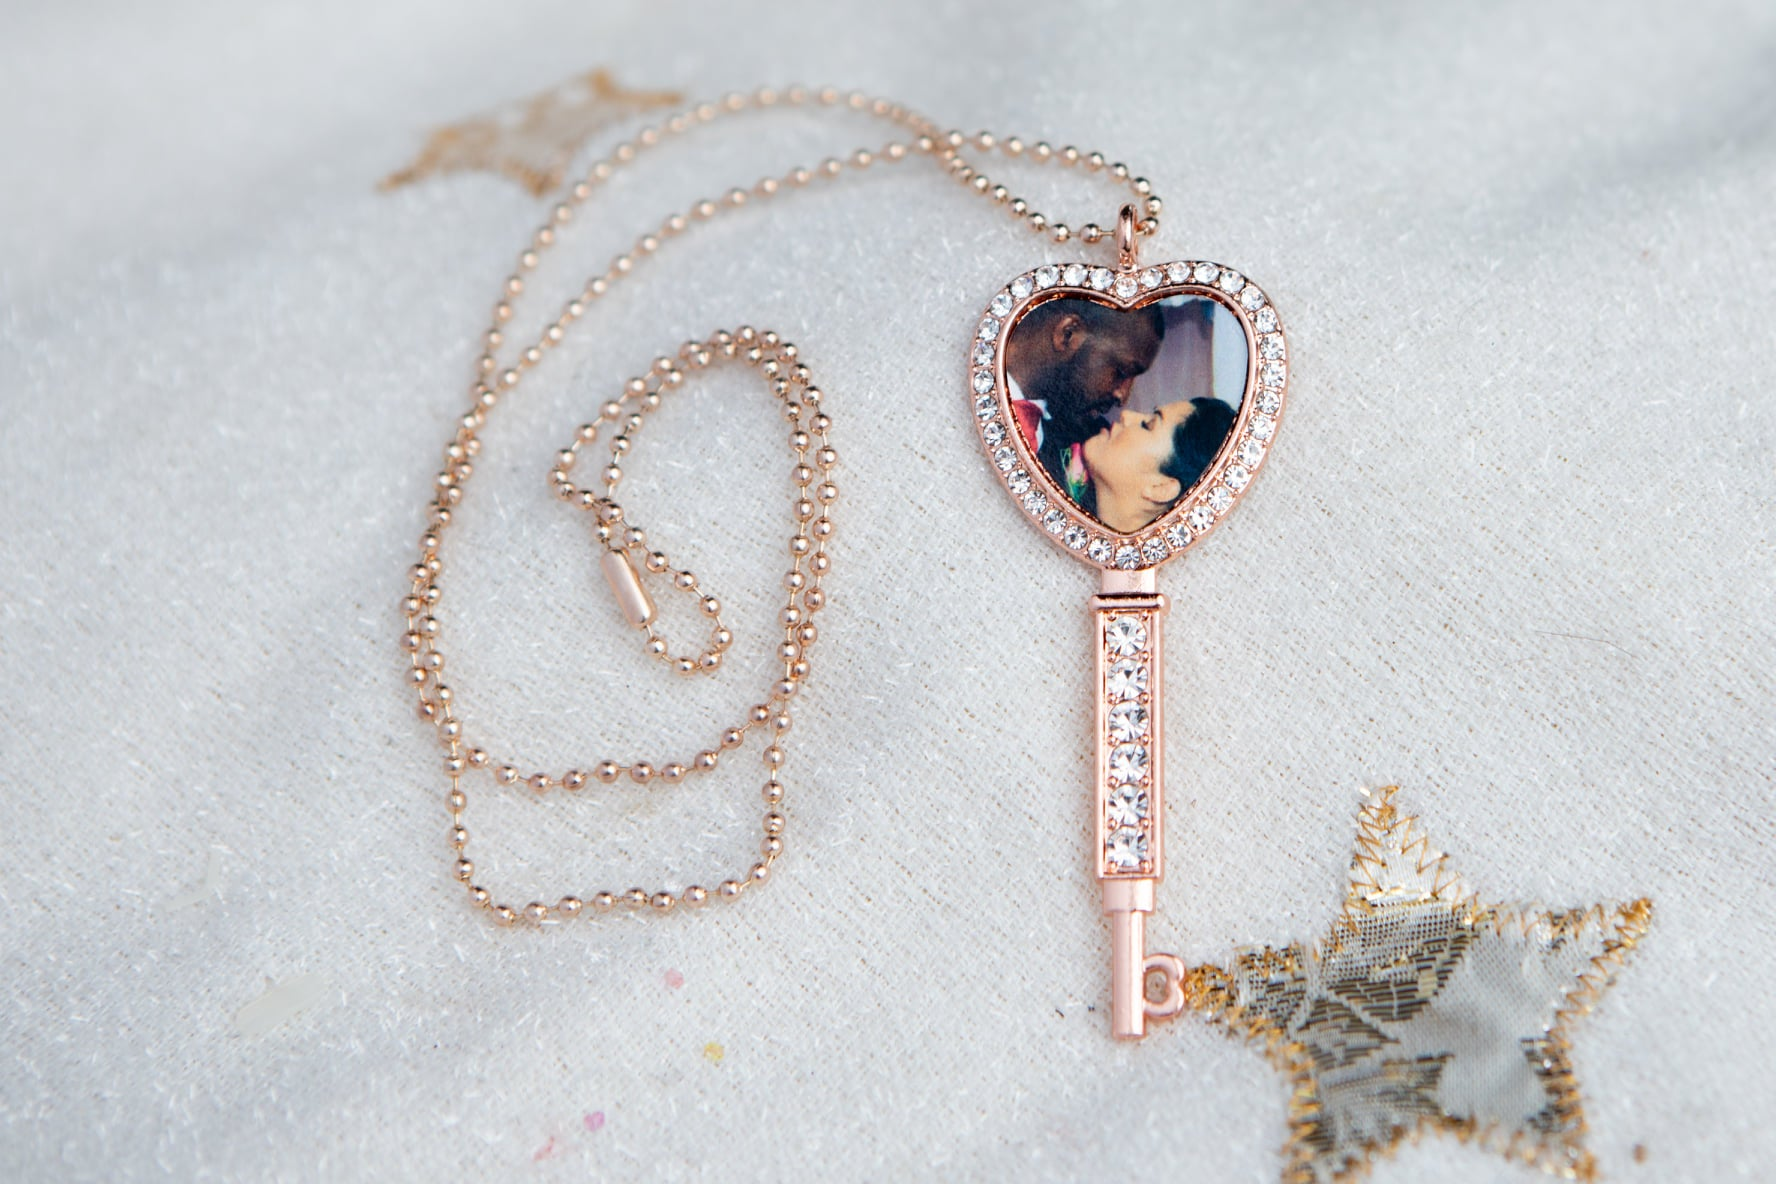 Key to the Heart Necklace